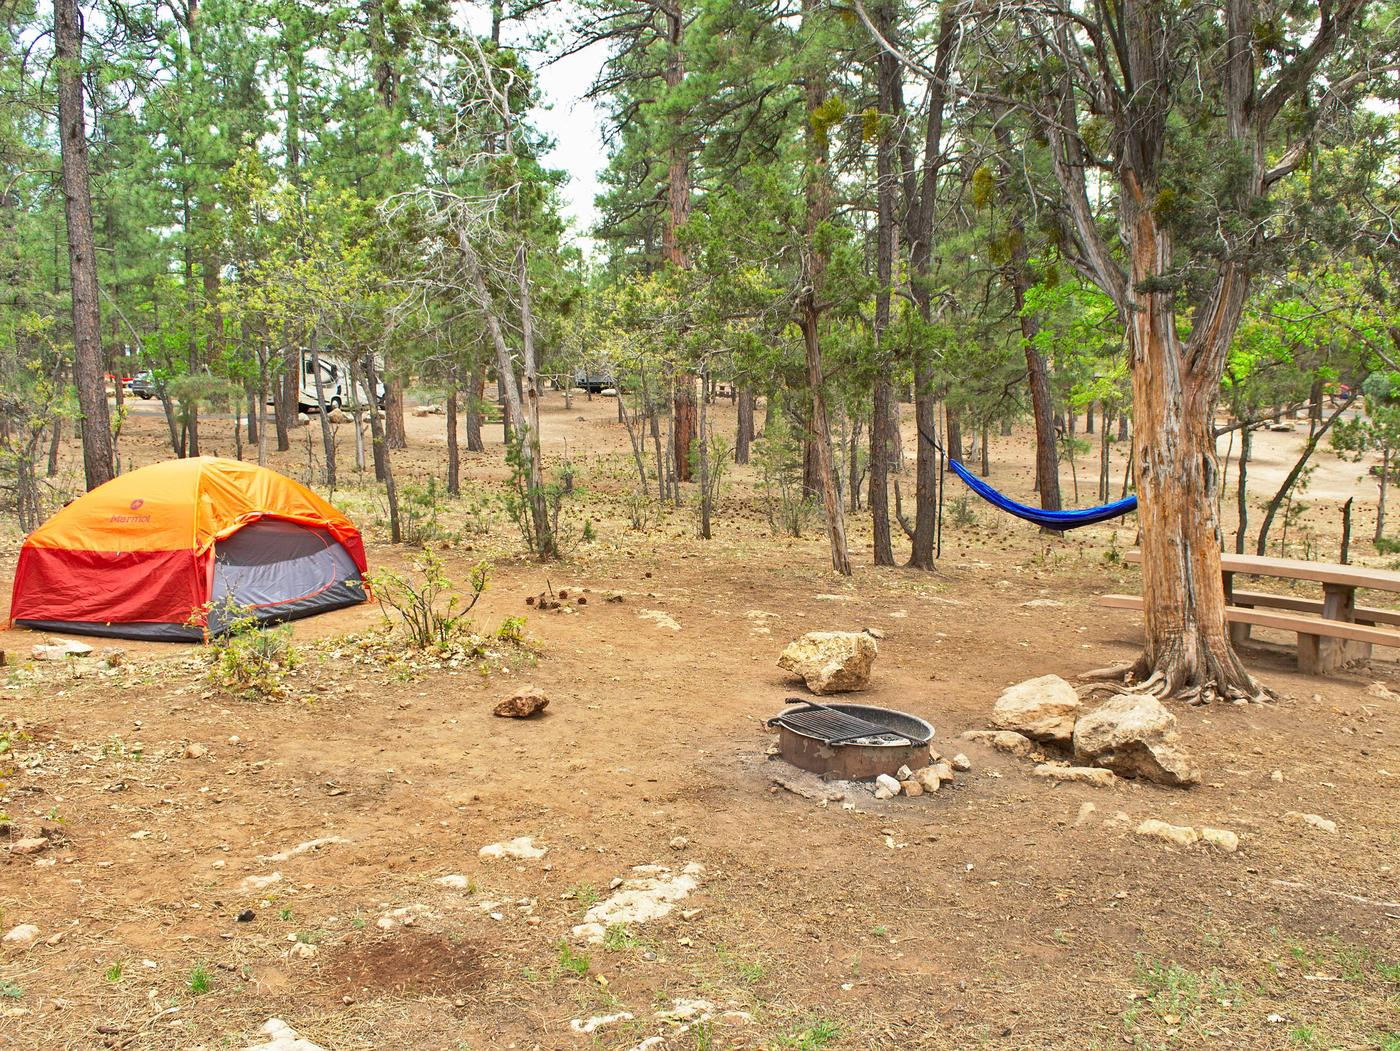 Picnic table, fire pit, tent, and hammock, Mather CampgroundThe picnic table, fire pit tent, and hammock, Mather Campground